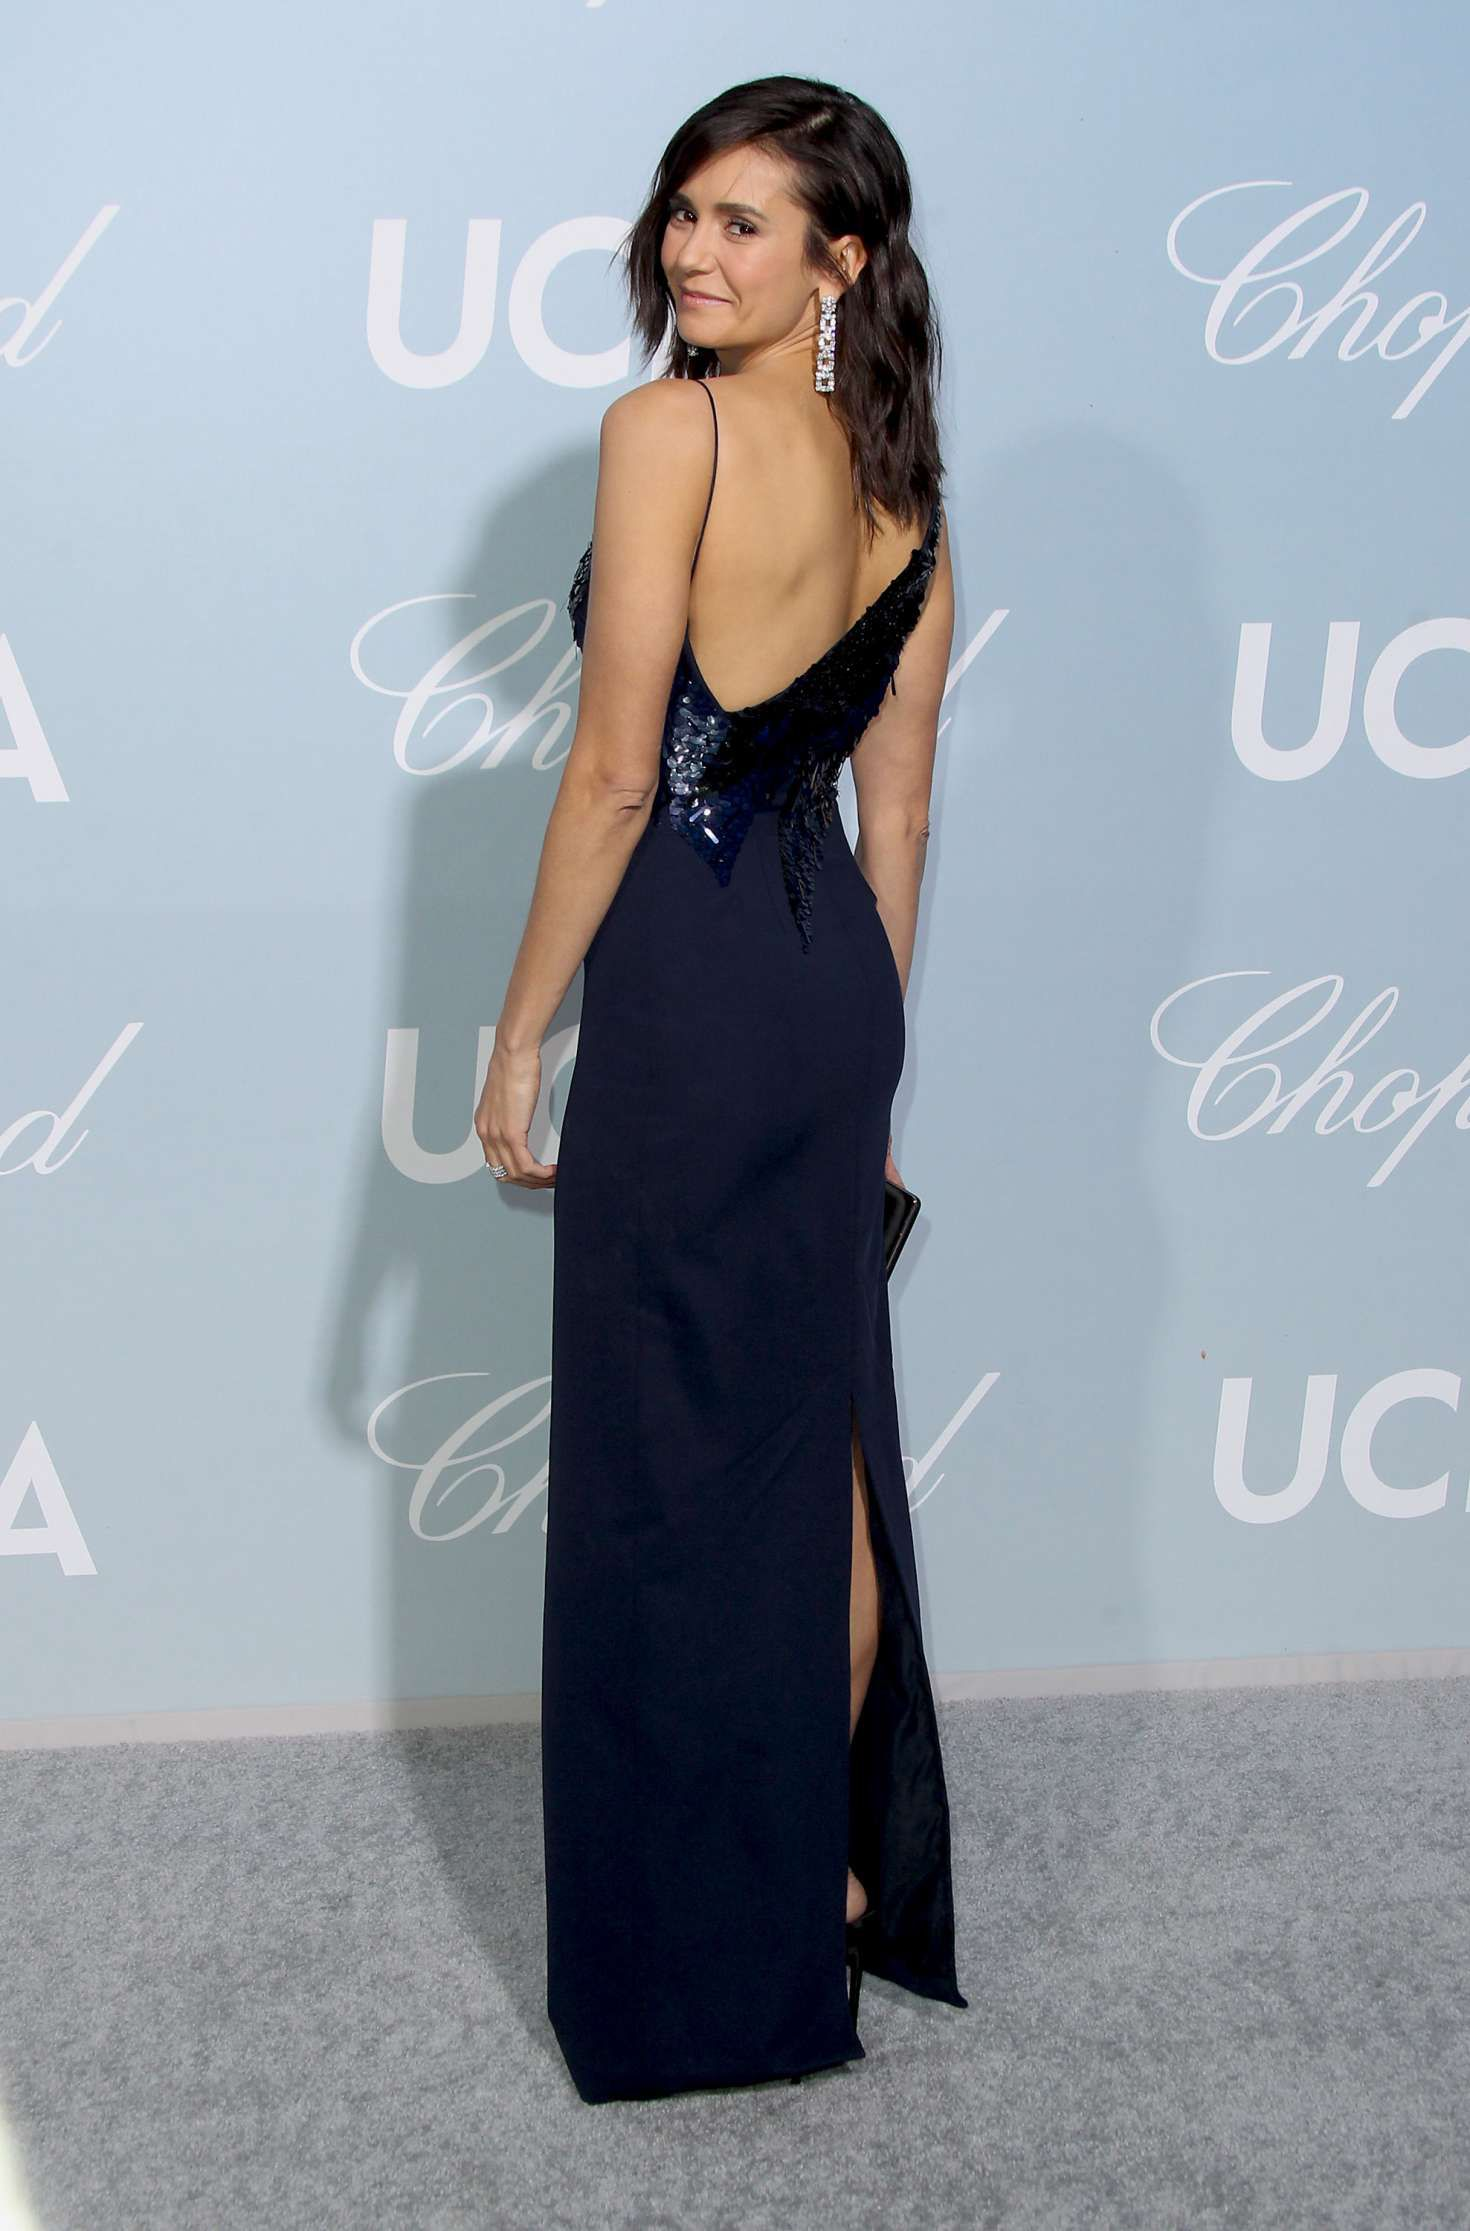 Nina Dobrev in dark blue dress poses for a camera